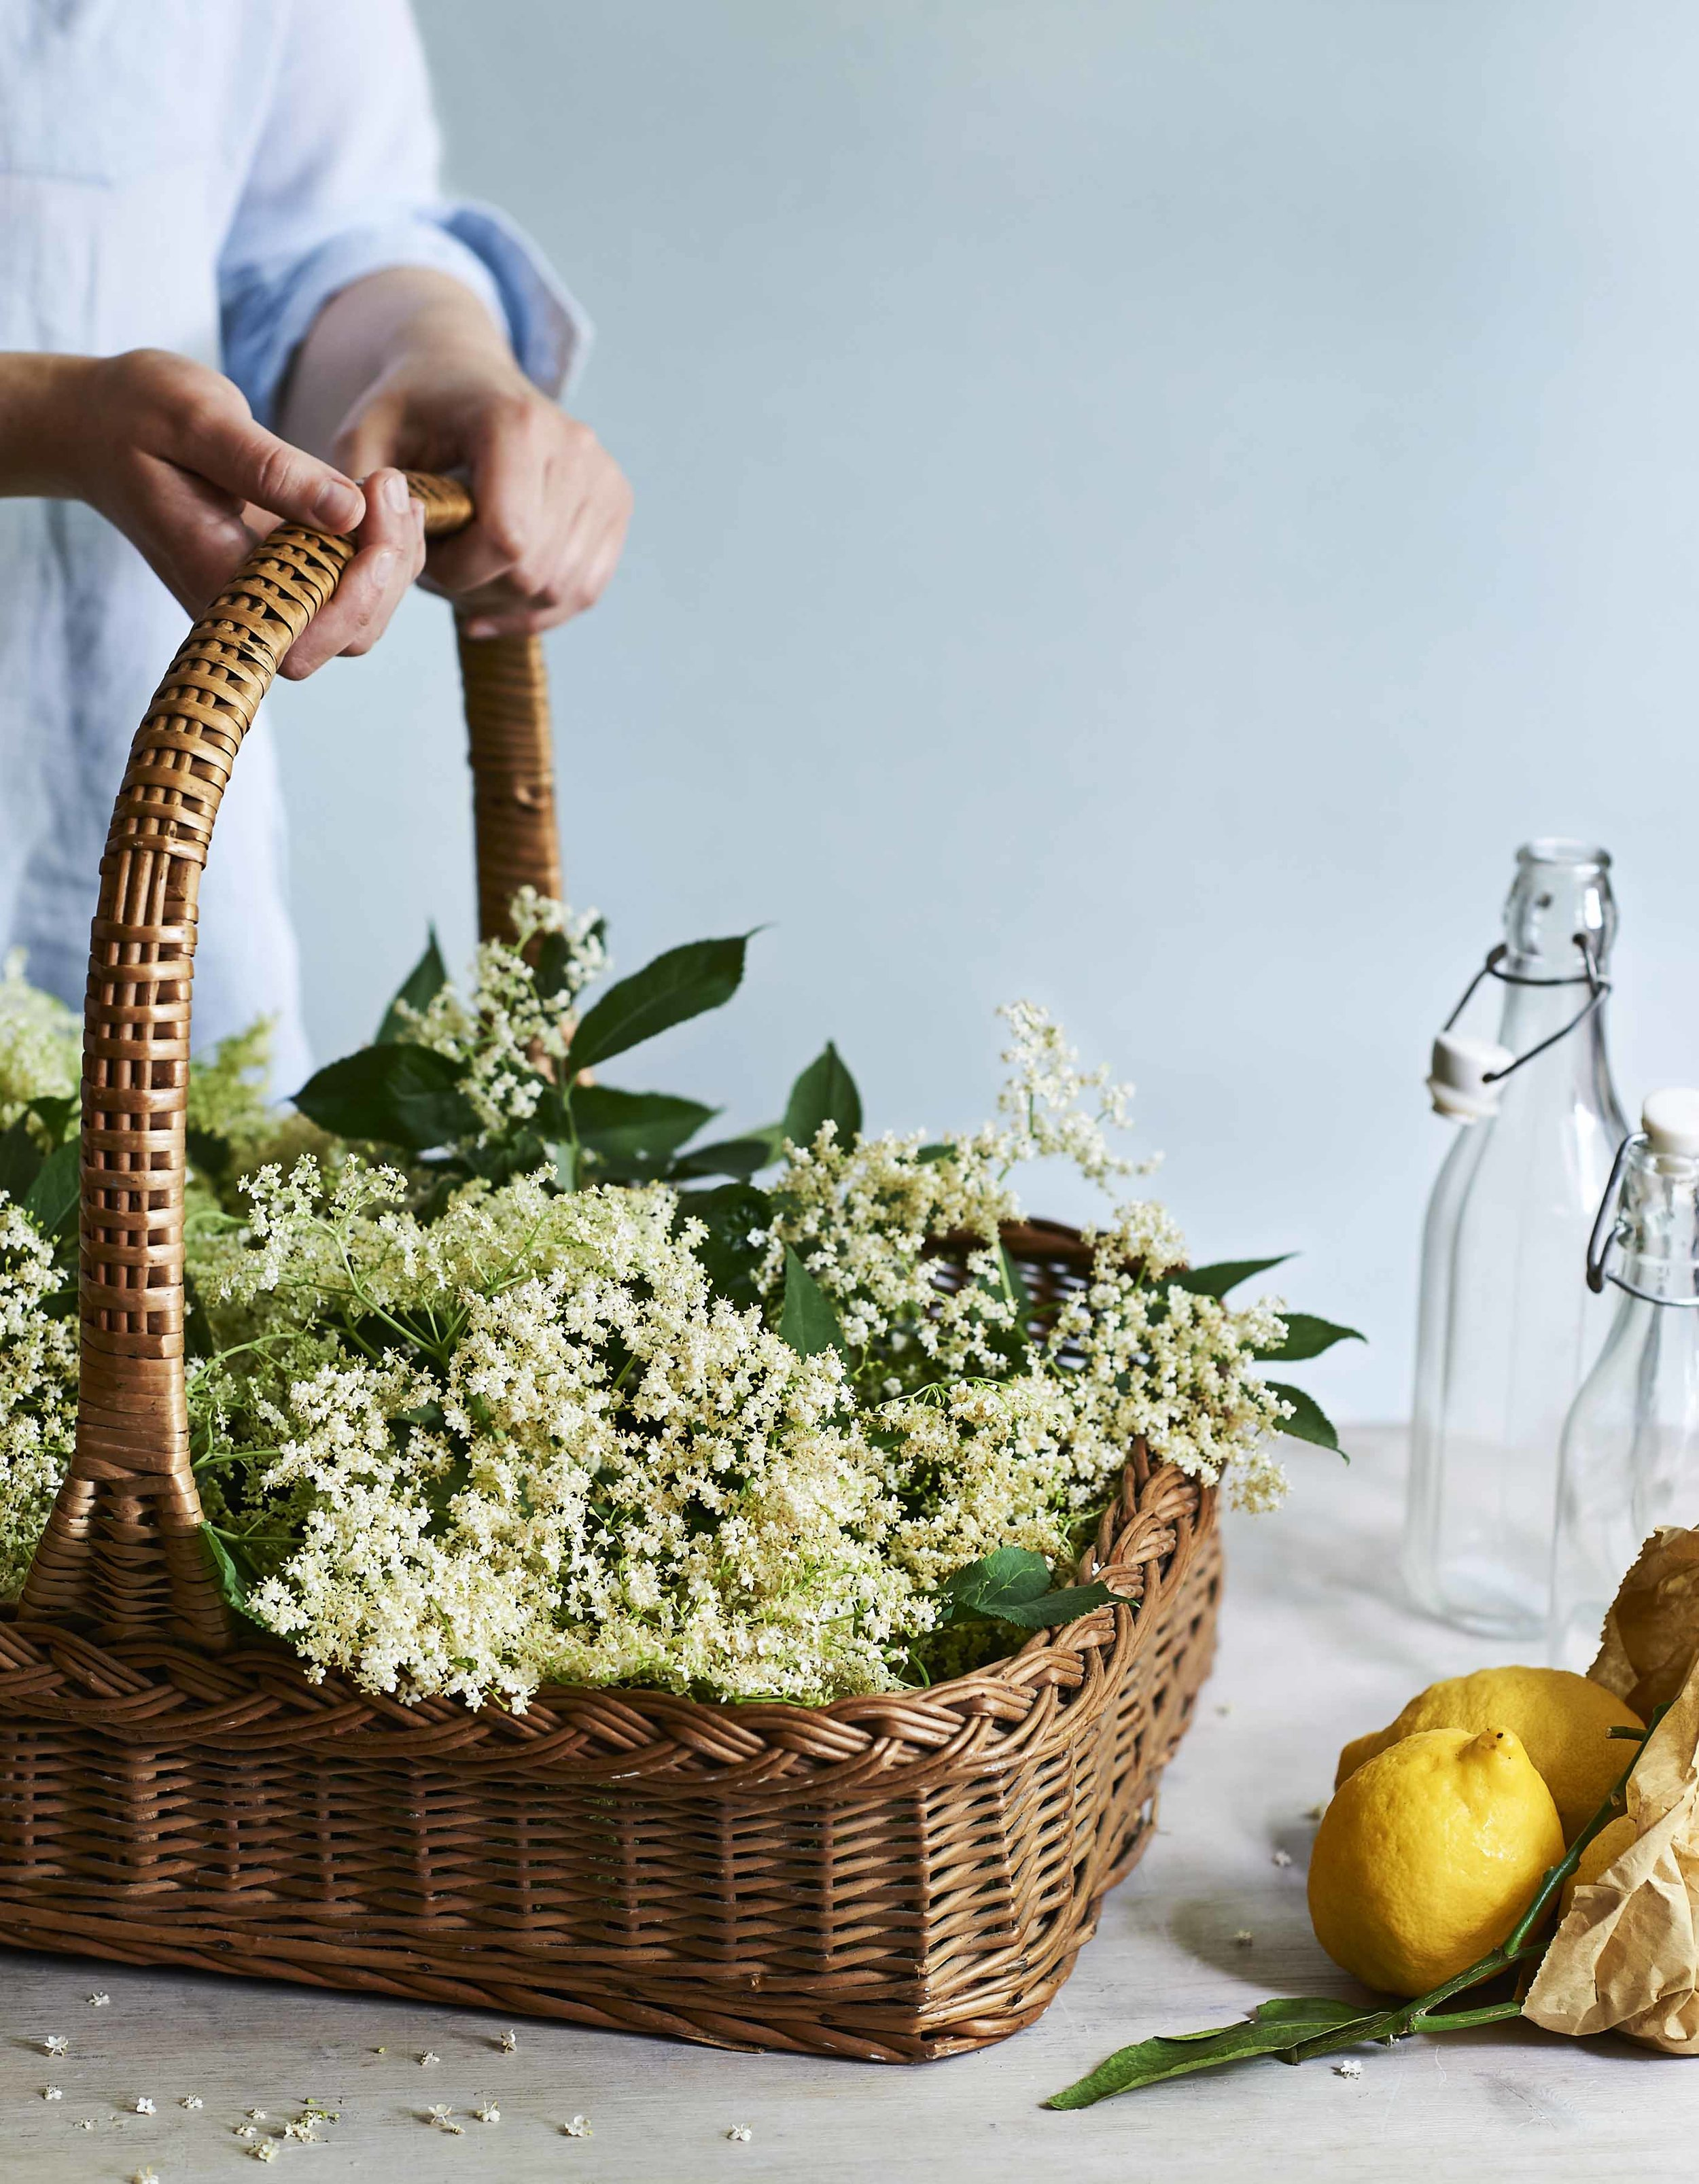 Elderflowers in a basket.jpg